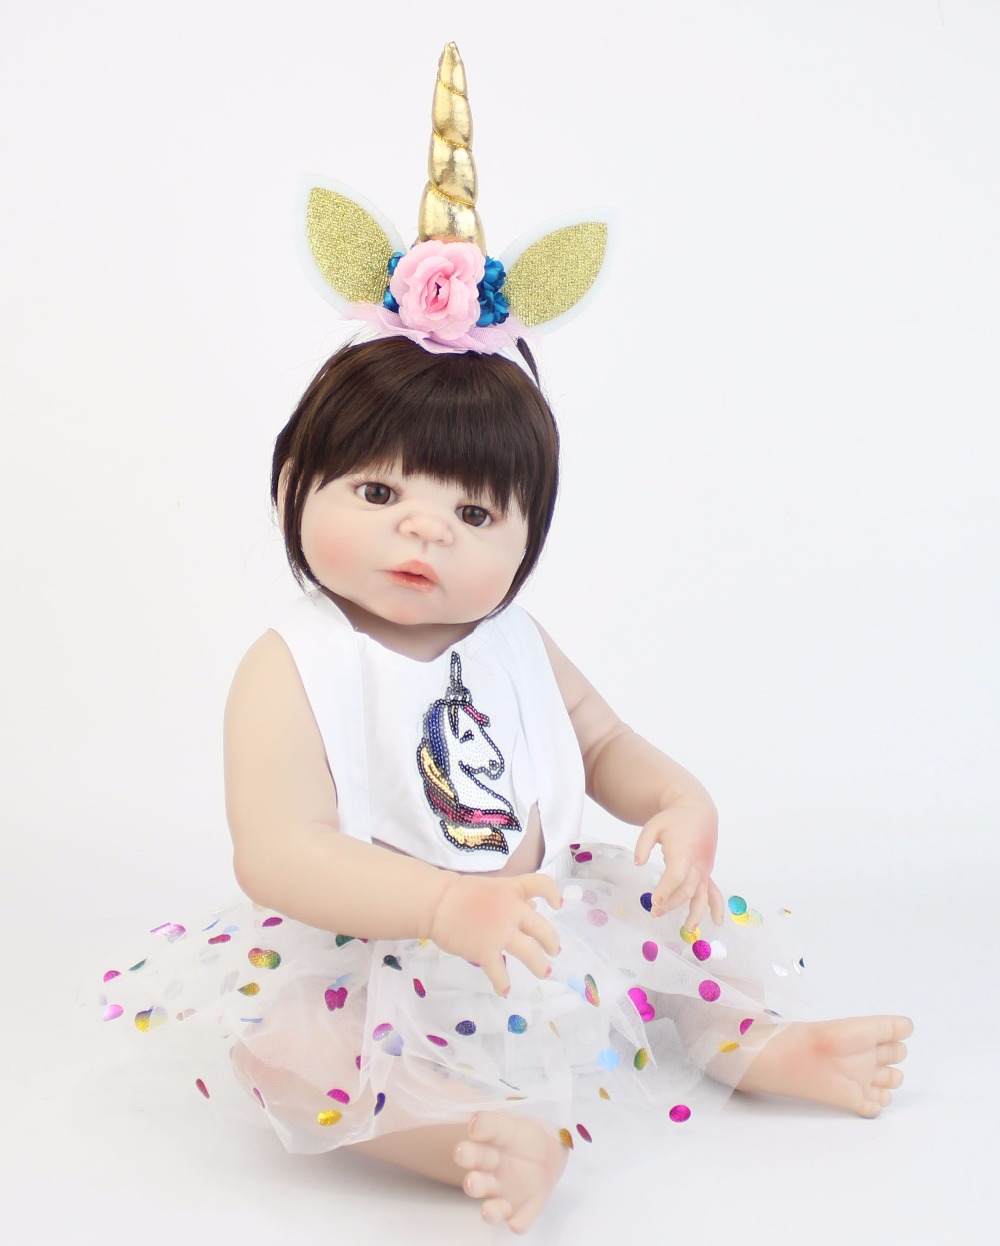 55cm Full Silicone Reborn Baby Doll Toy Soft Vinyl Newborn Princess Babies Girl Bonecas Bebe Alive Bathe Toy Cute Birthday Gift 55cm victoria soft vinyl reborn baby dolls in pink dress 22 inch full vinyl newborn bebe reborn doll princess girl birthday gift